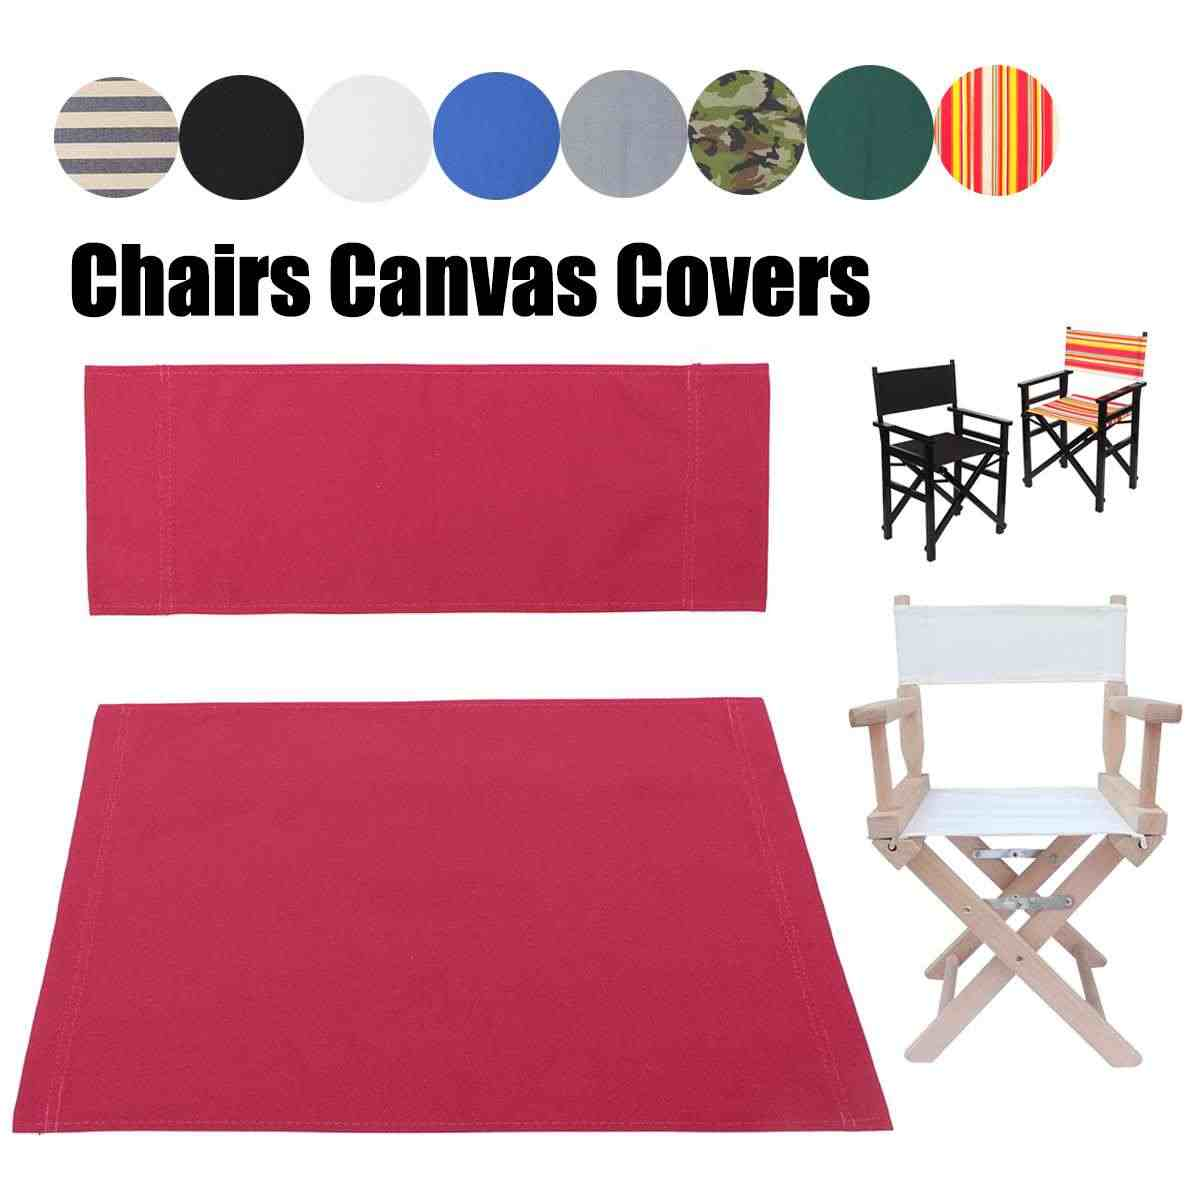 Fantastic Replacement Canvas Directors Chairs Cover Stool Protector Creativecarmelina Interior Chair Design Creativecarmelinacom